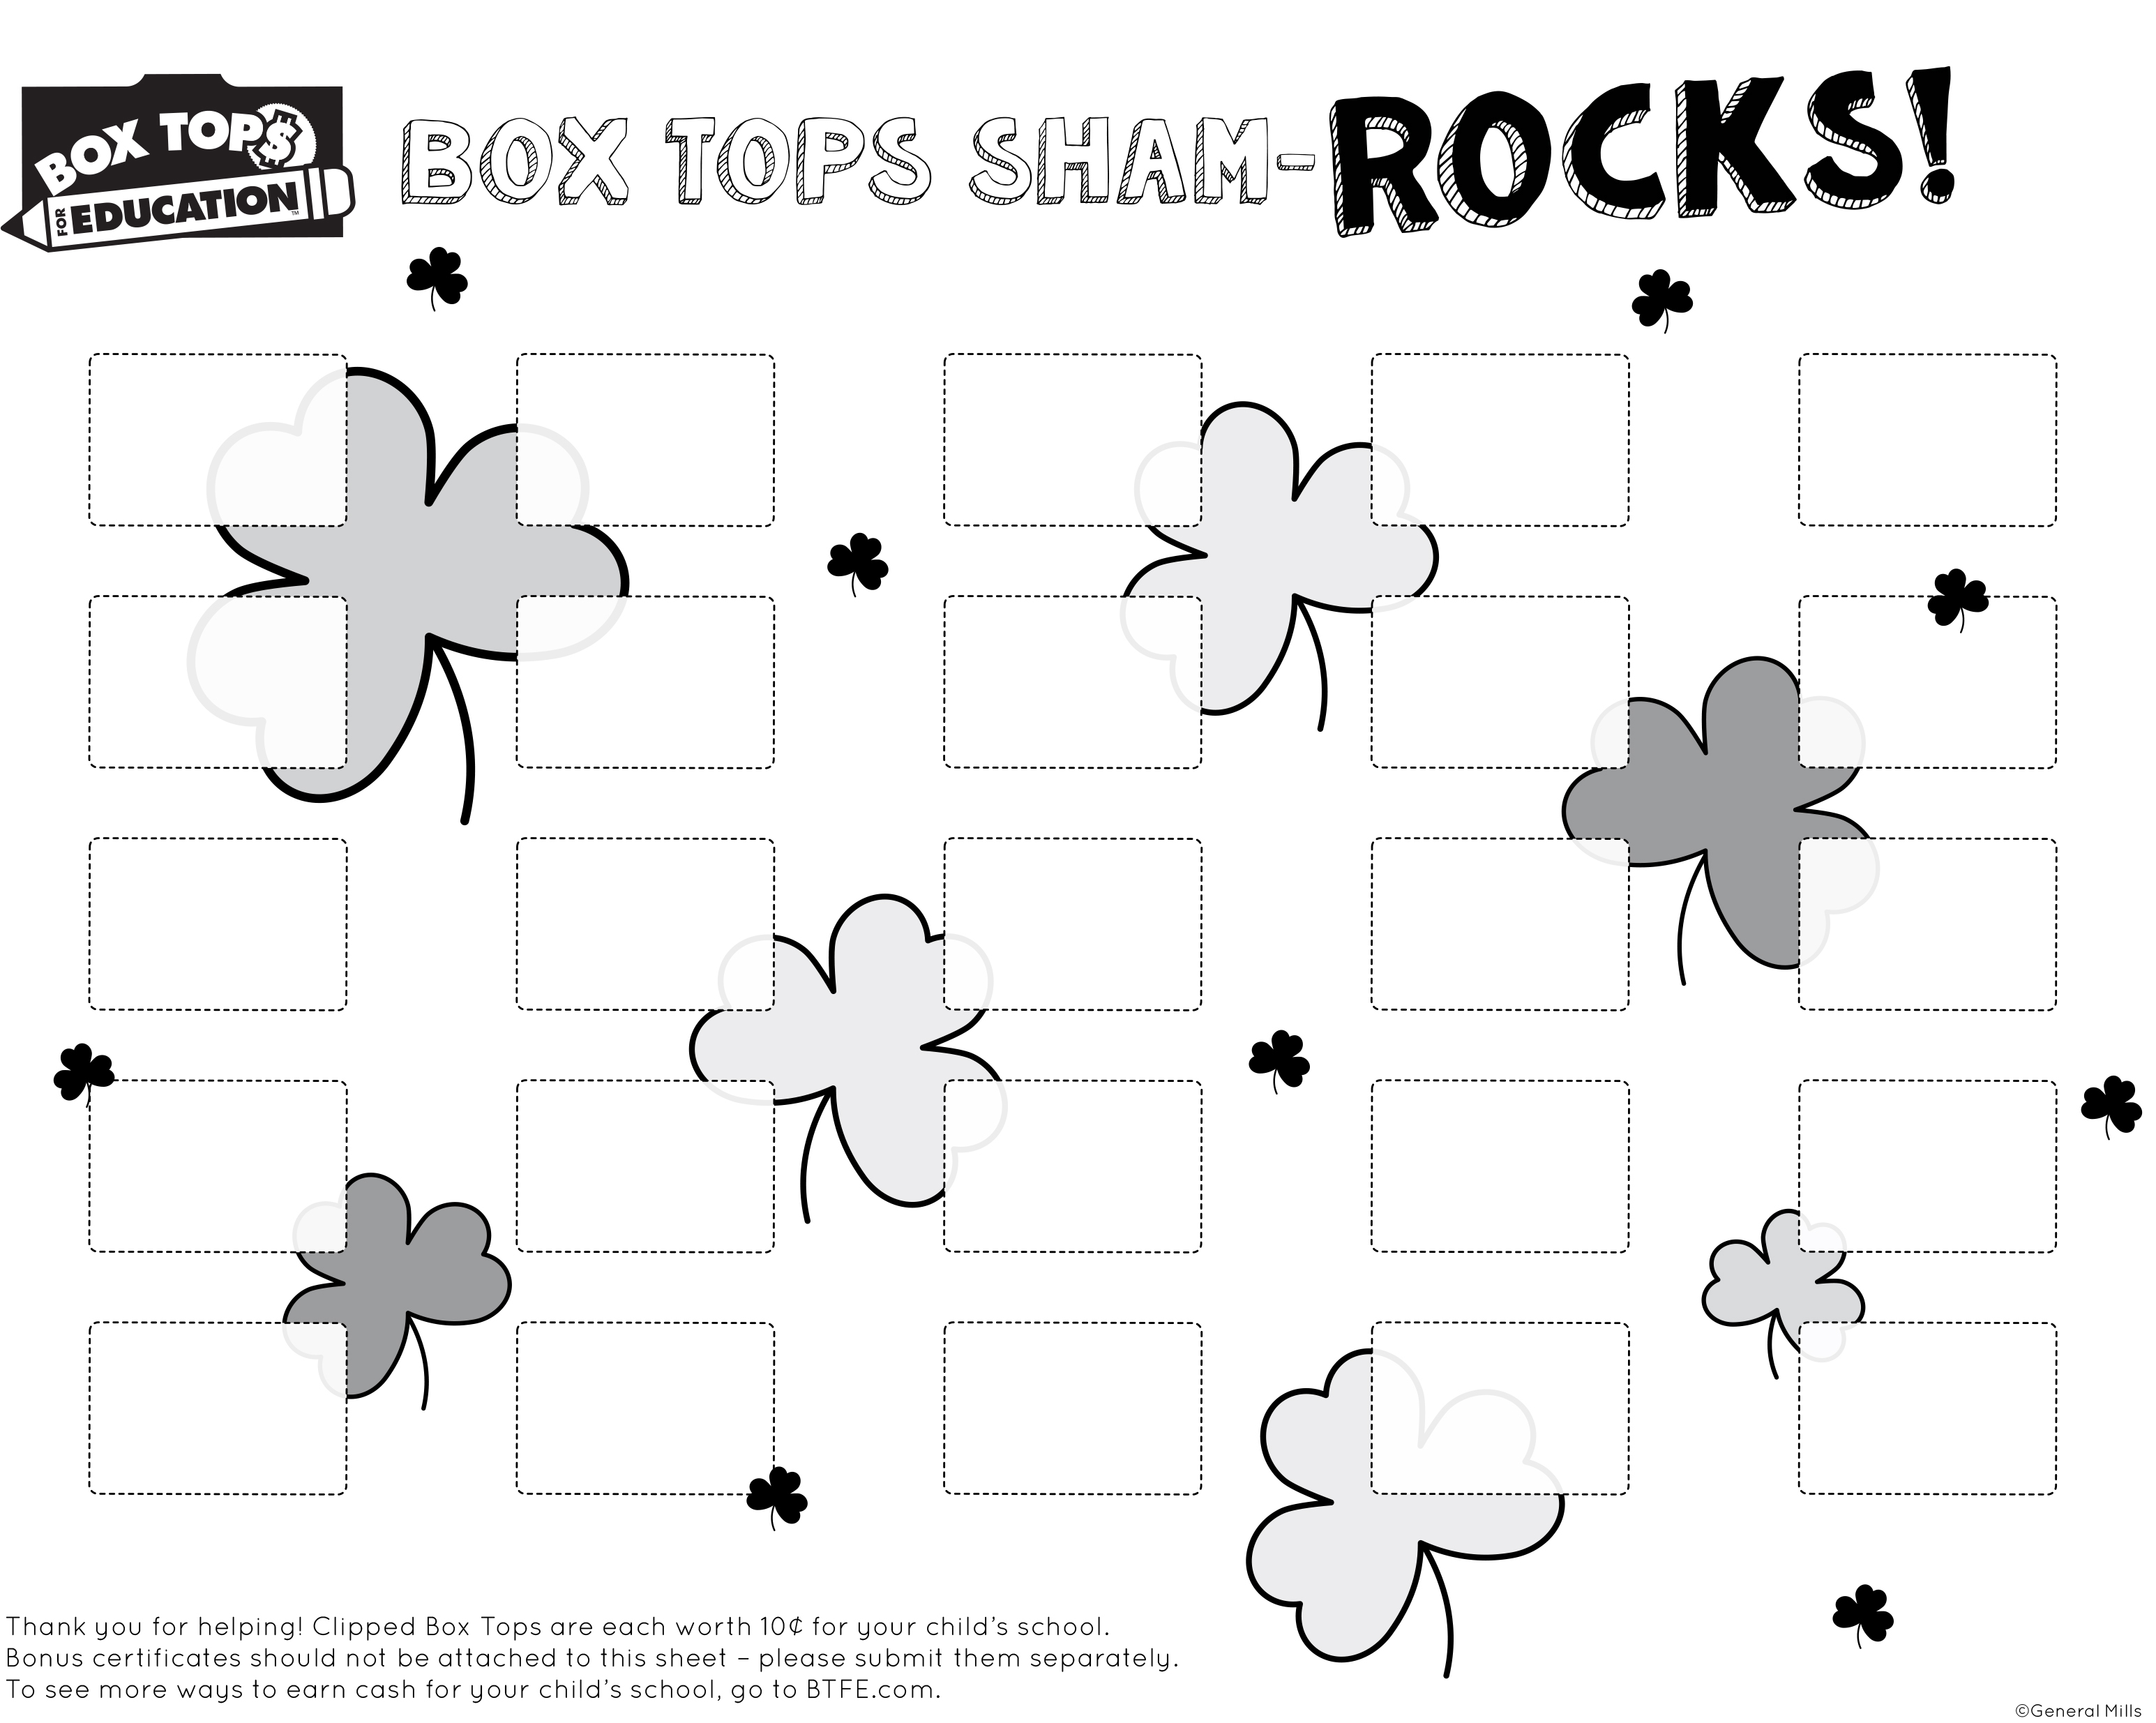 photo about Printable Box Tops Collection Sheets identify Box Tops 4 Schooling PTO Fort Sam Houston Essential College